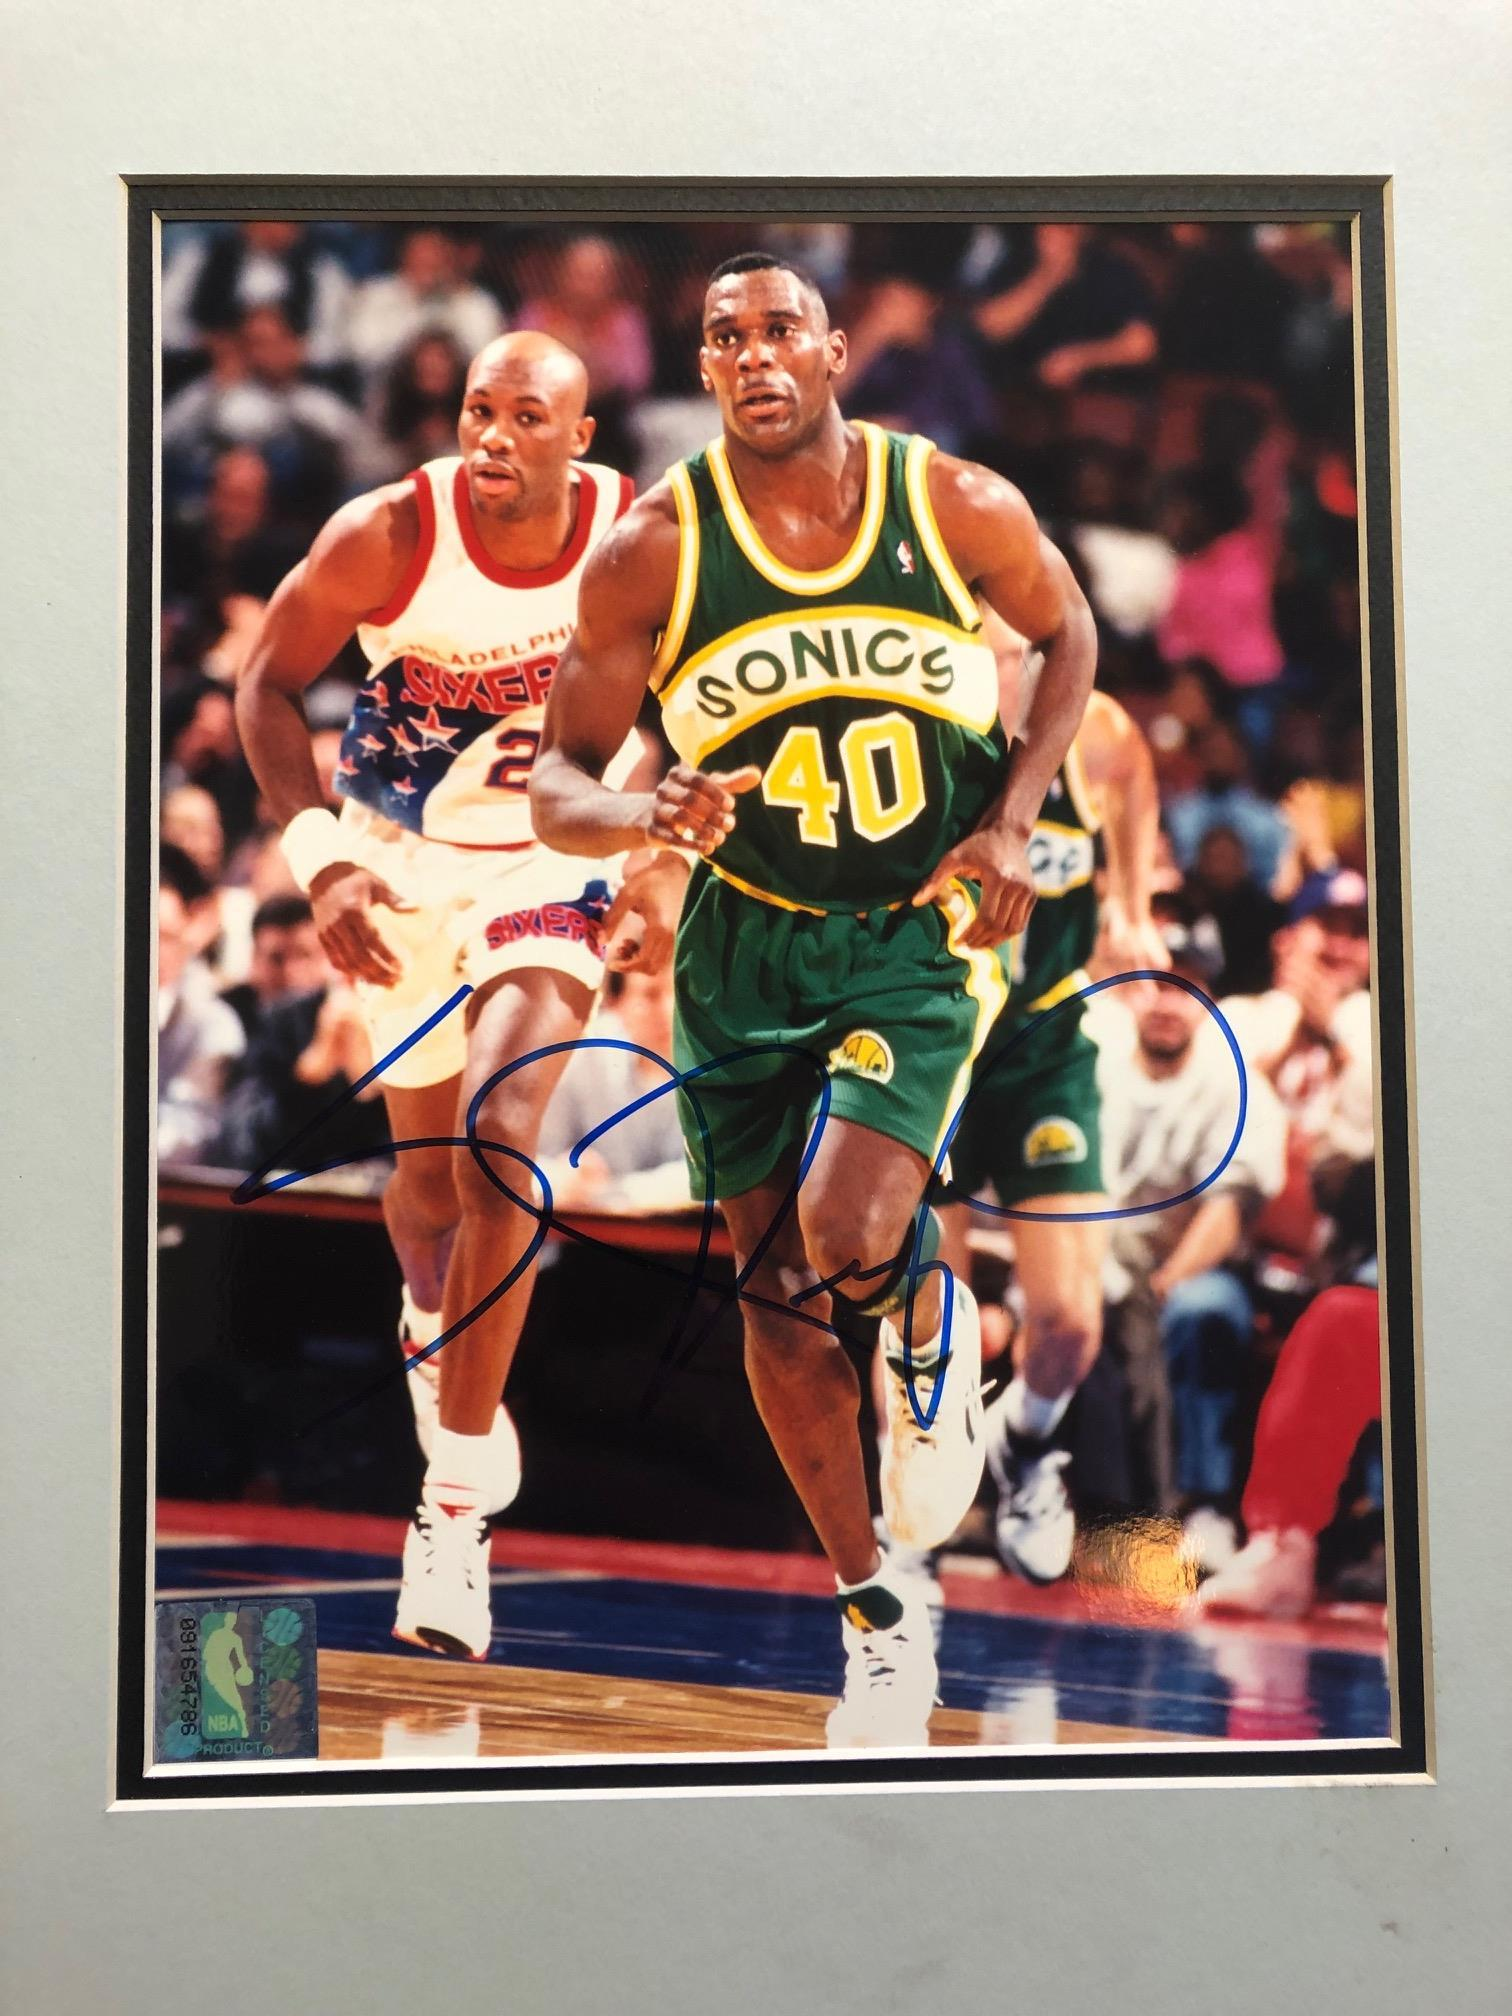 Matted and framed autographed photo of the legendary Shawn Kemp!